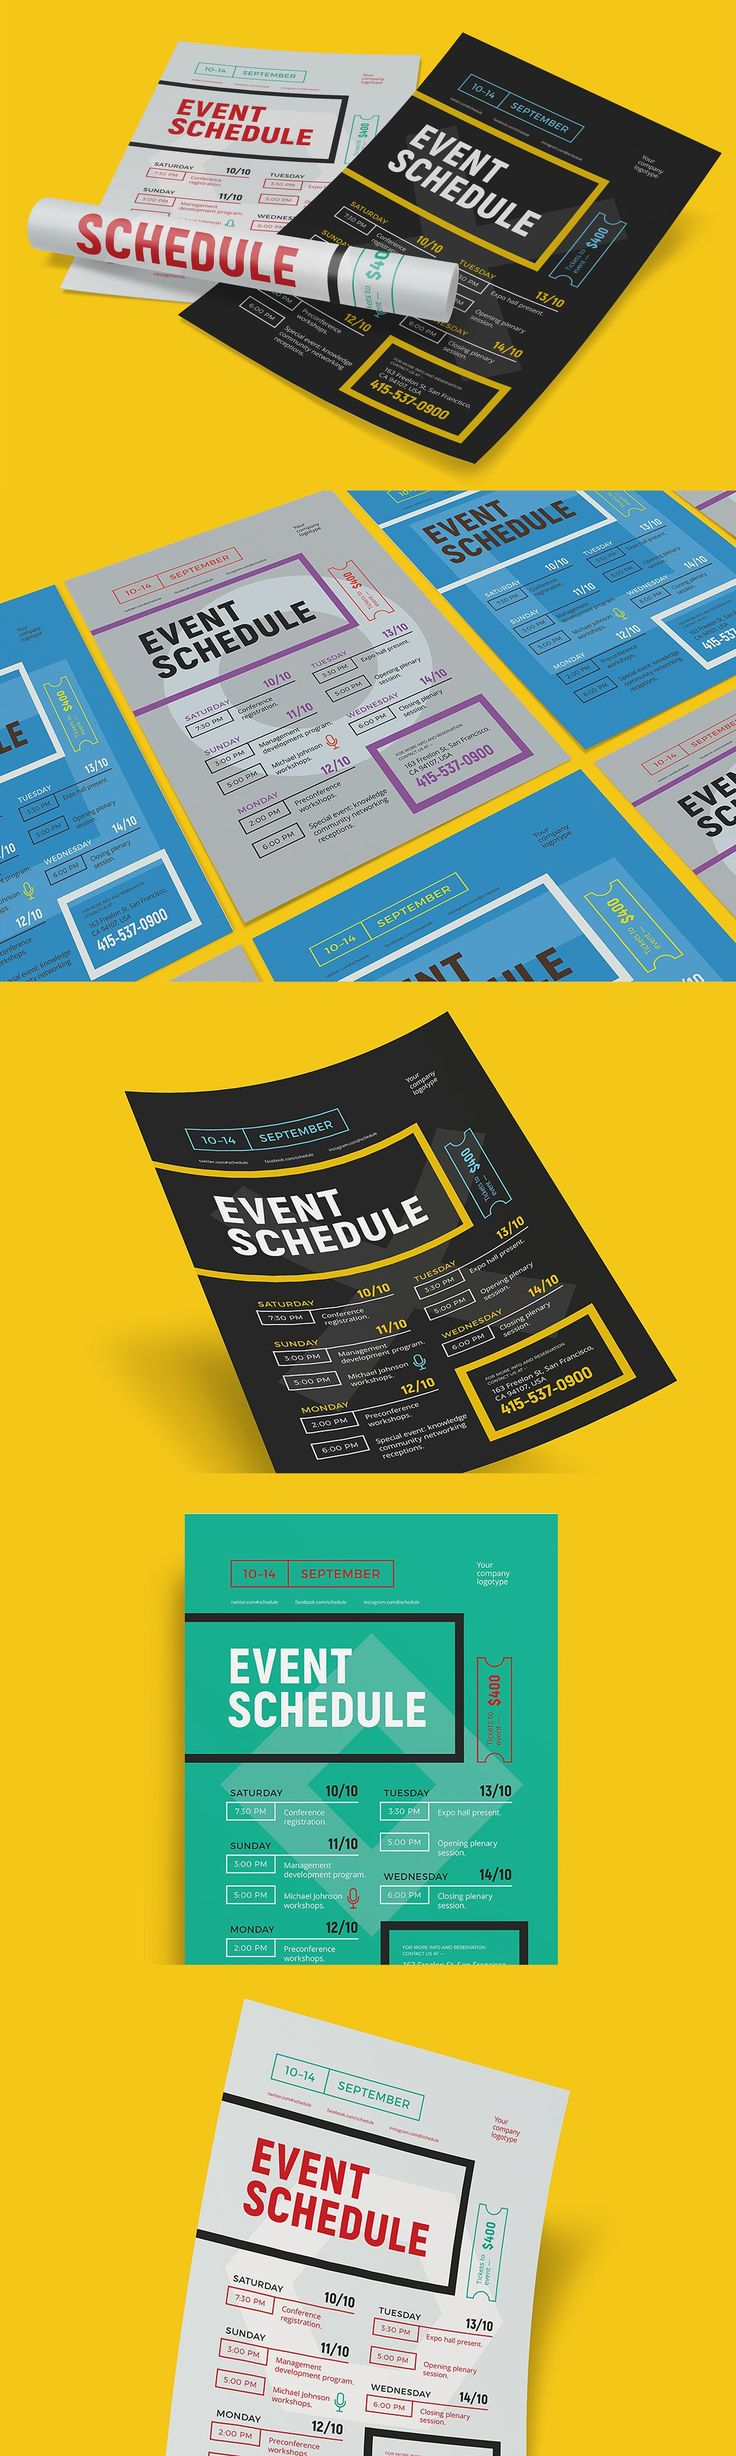 Schedule event poster template EPS,  AI